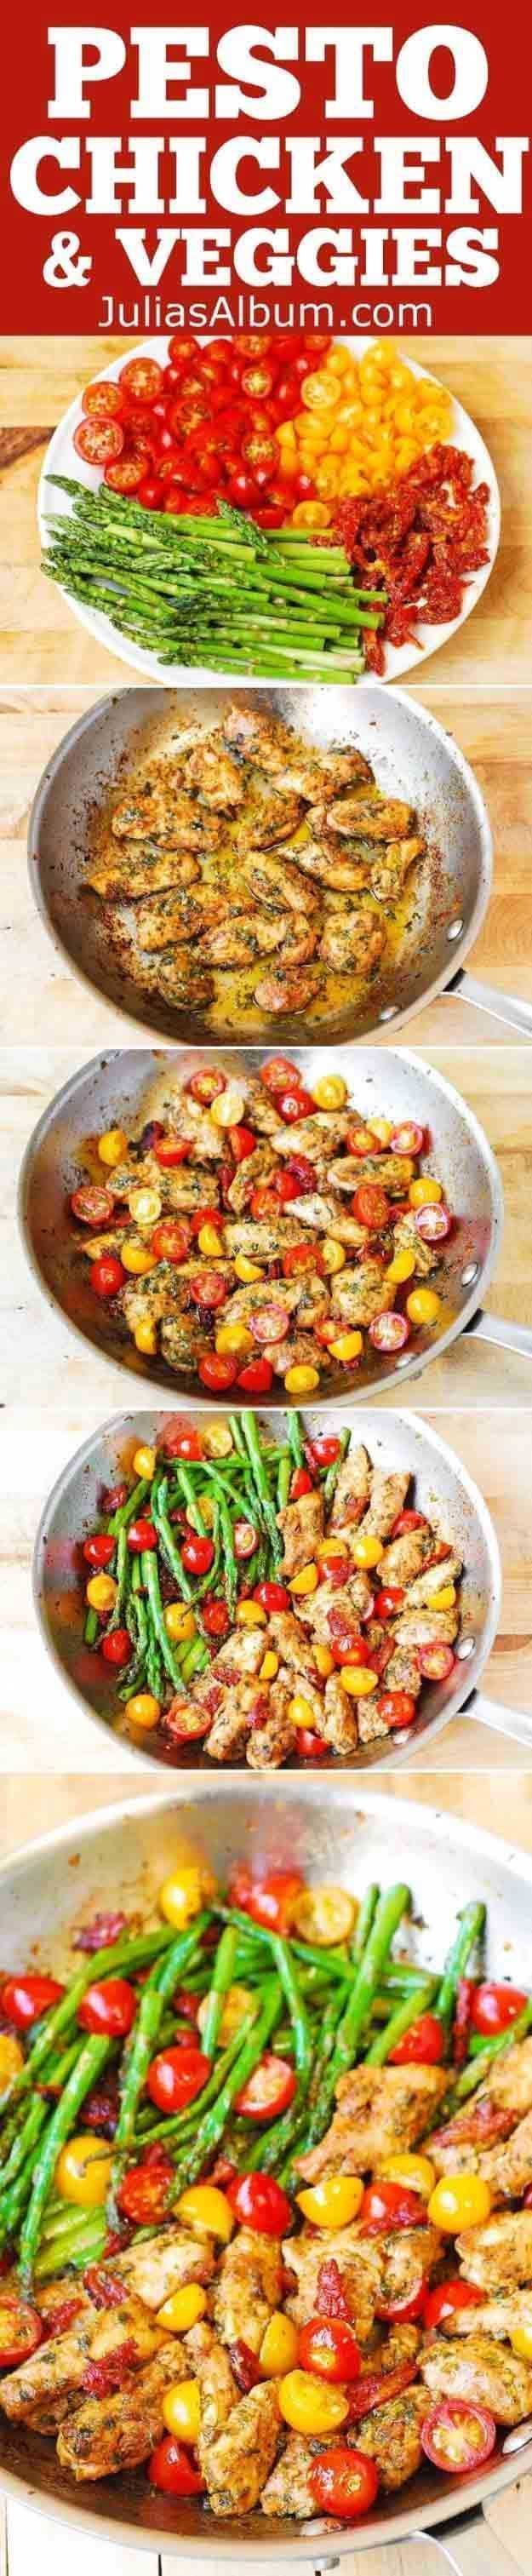 Quick and Easy Healthy Dinner Recipes - One-Pan Pesto Chicken and Veggies - Awesome Recipes For Weight Loss - Great Receipes For One, For Two or For Family Gatherings - Quick Recipes for When You're On A Budget - Chicken and Zucchini Dishes Under 500 Calo